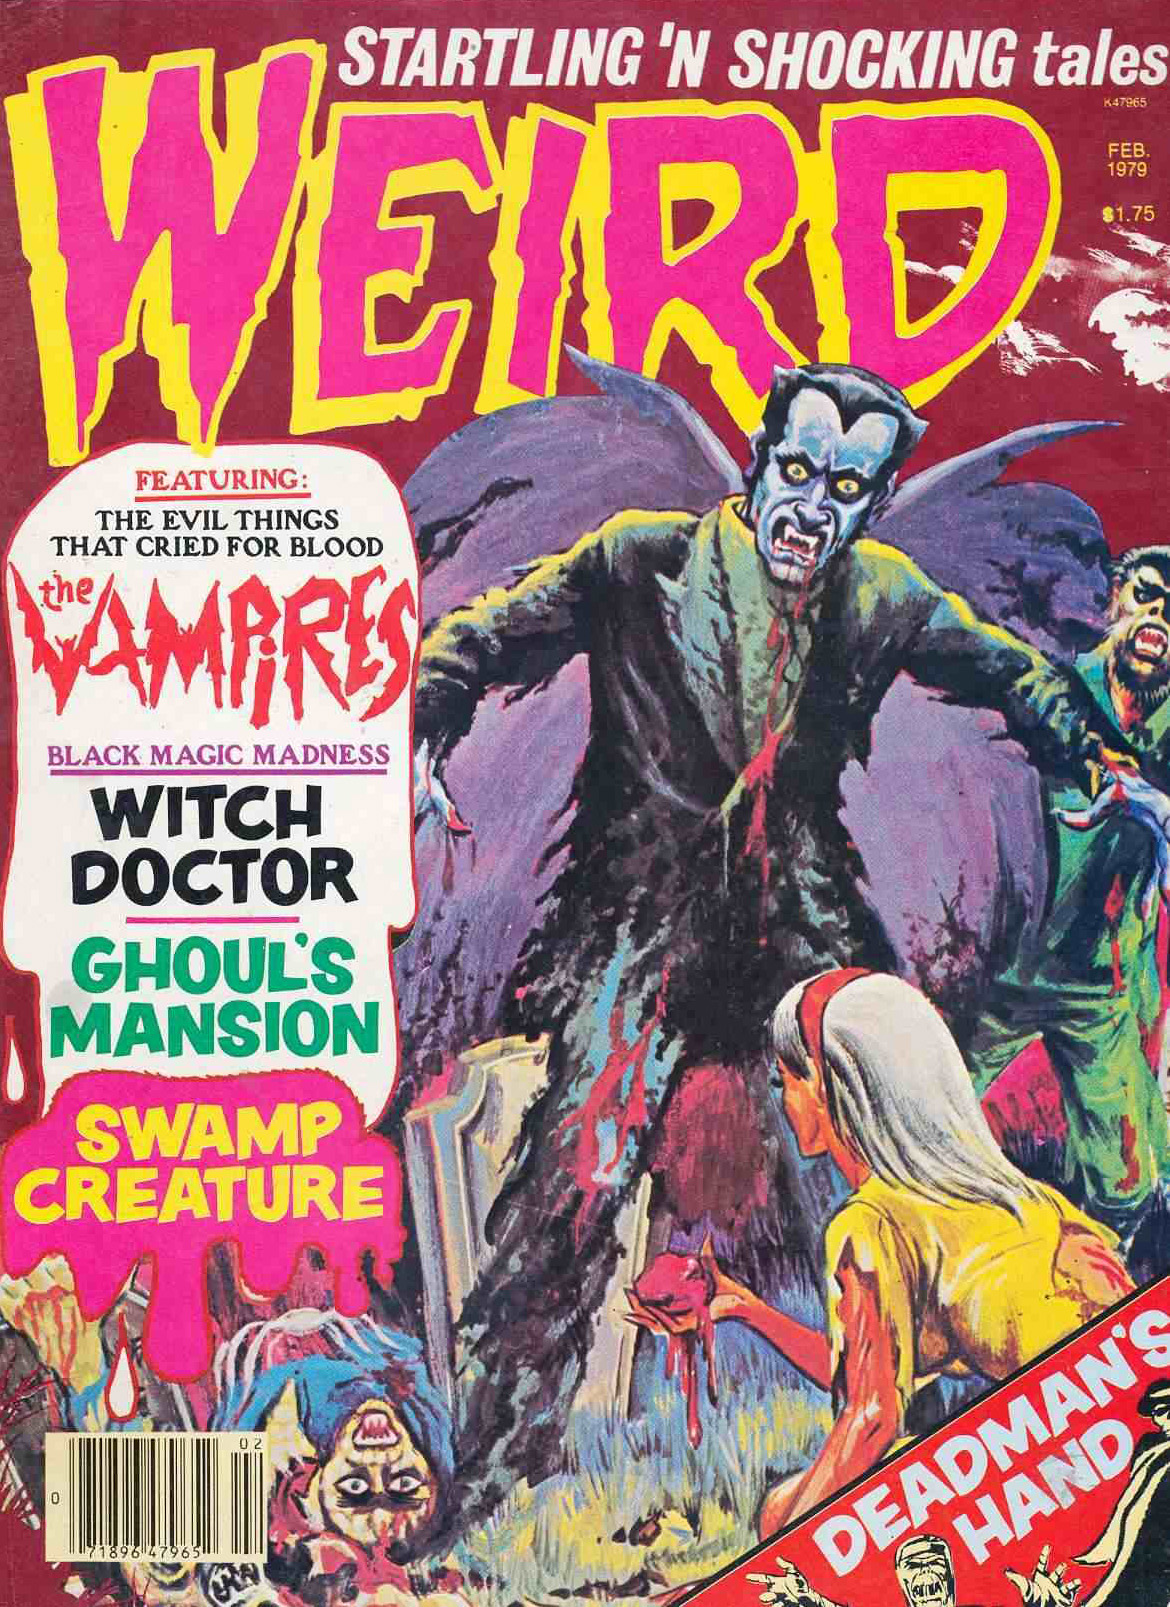 Weird (Eerie Publications, 1979)